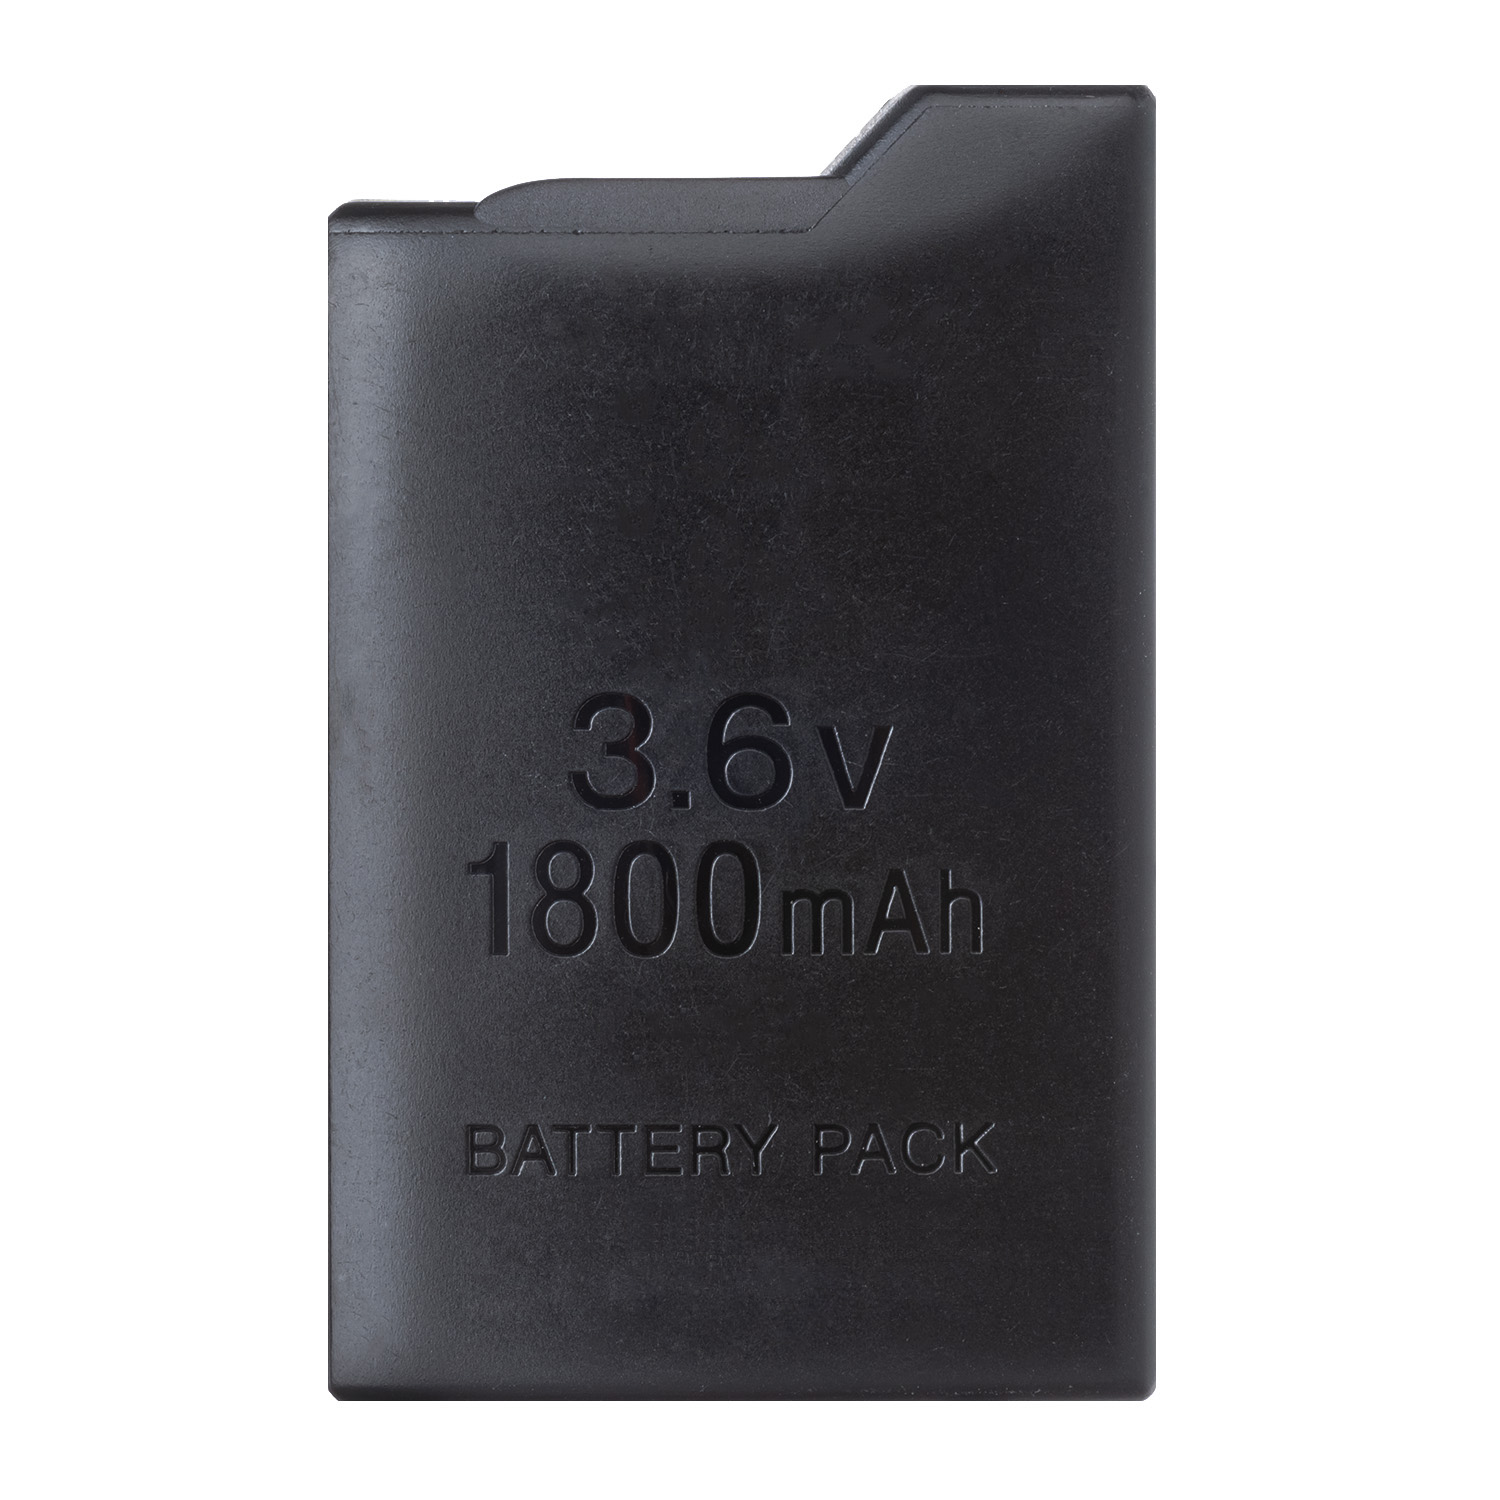 OSTENT 1800mAh 3 6V Lithium Ion Rechargeable Battery Pack Replacement for Sony PSP 1000 PSP-110 Console